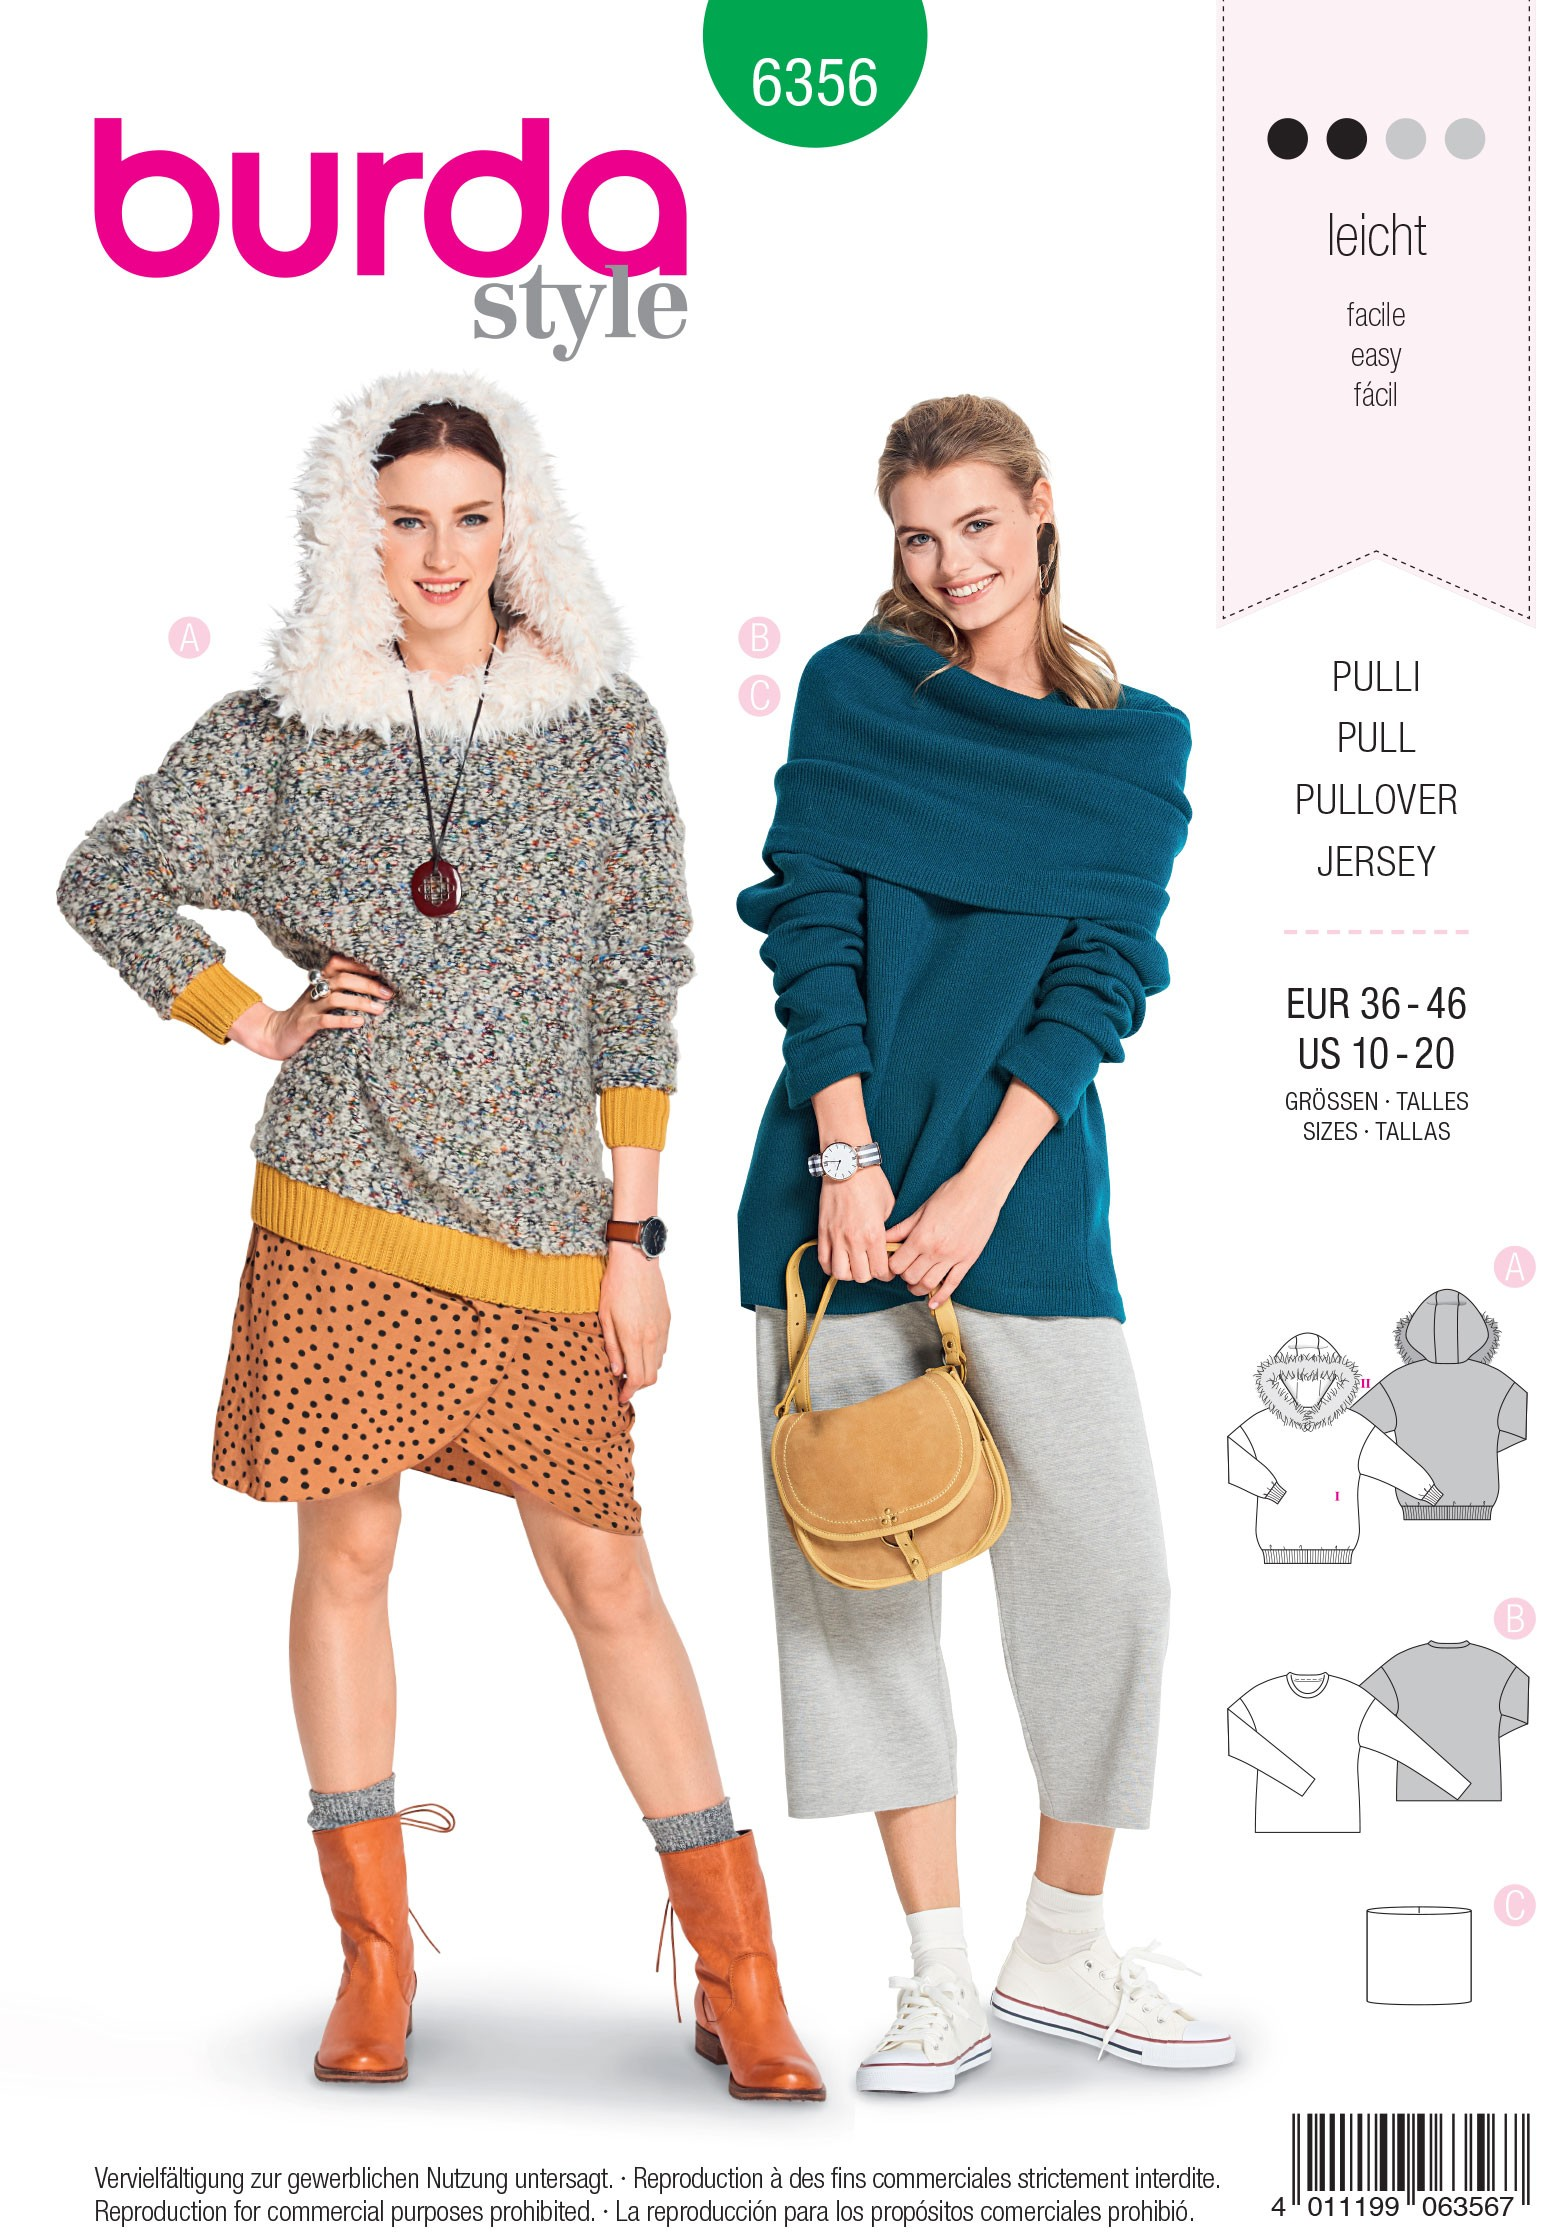 Burda Style Misses' Loose Fitting Pullover Jumper With Hood Sewing Pattern 6366